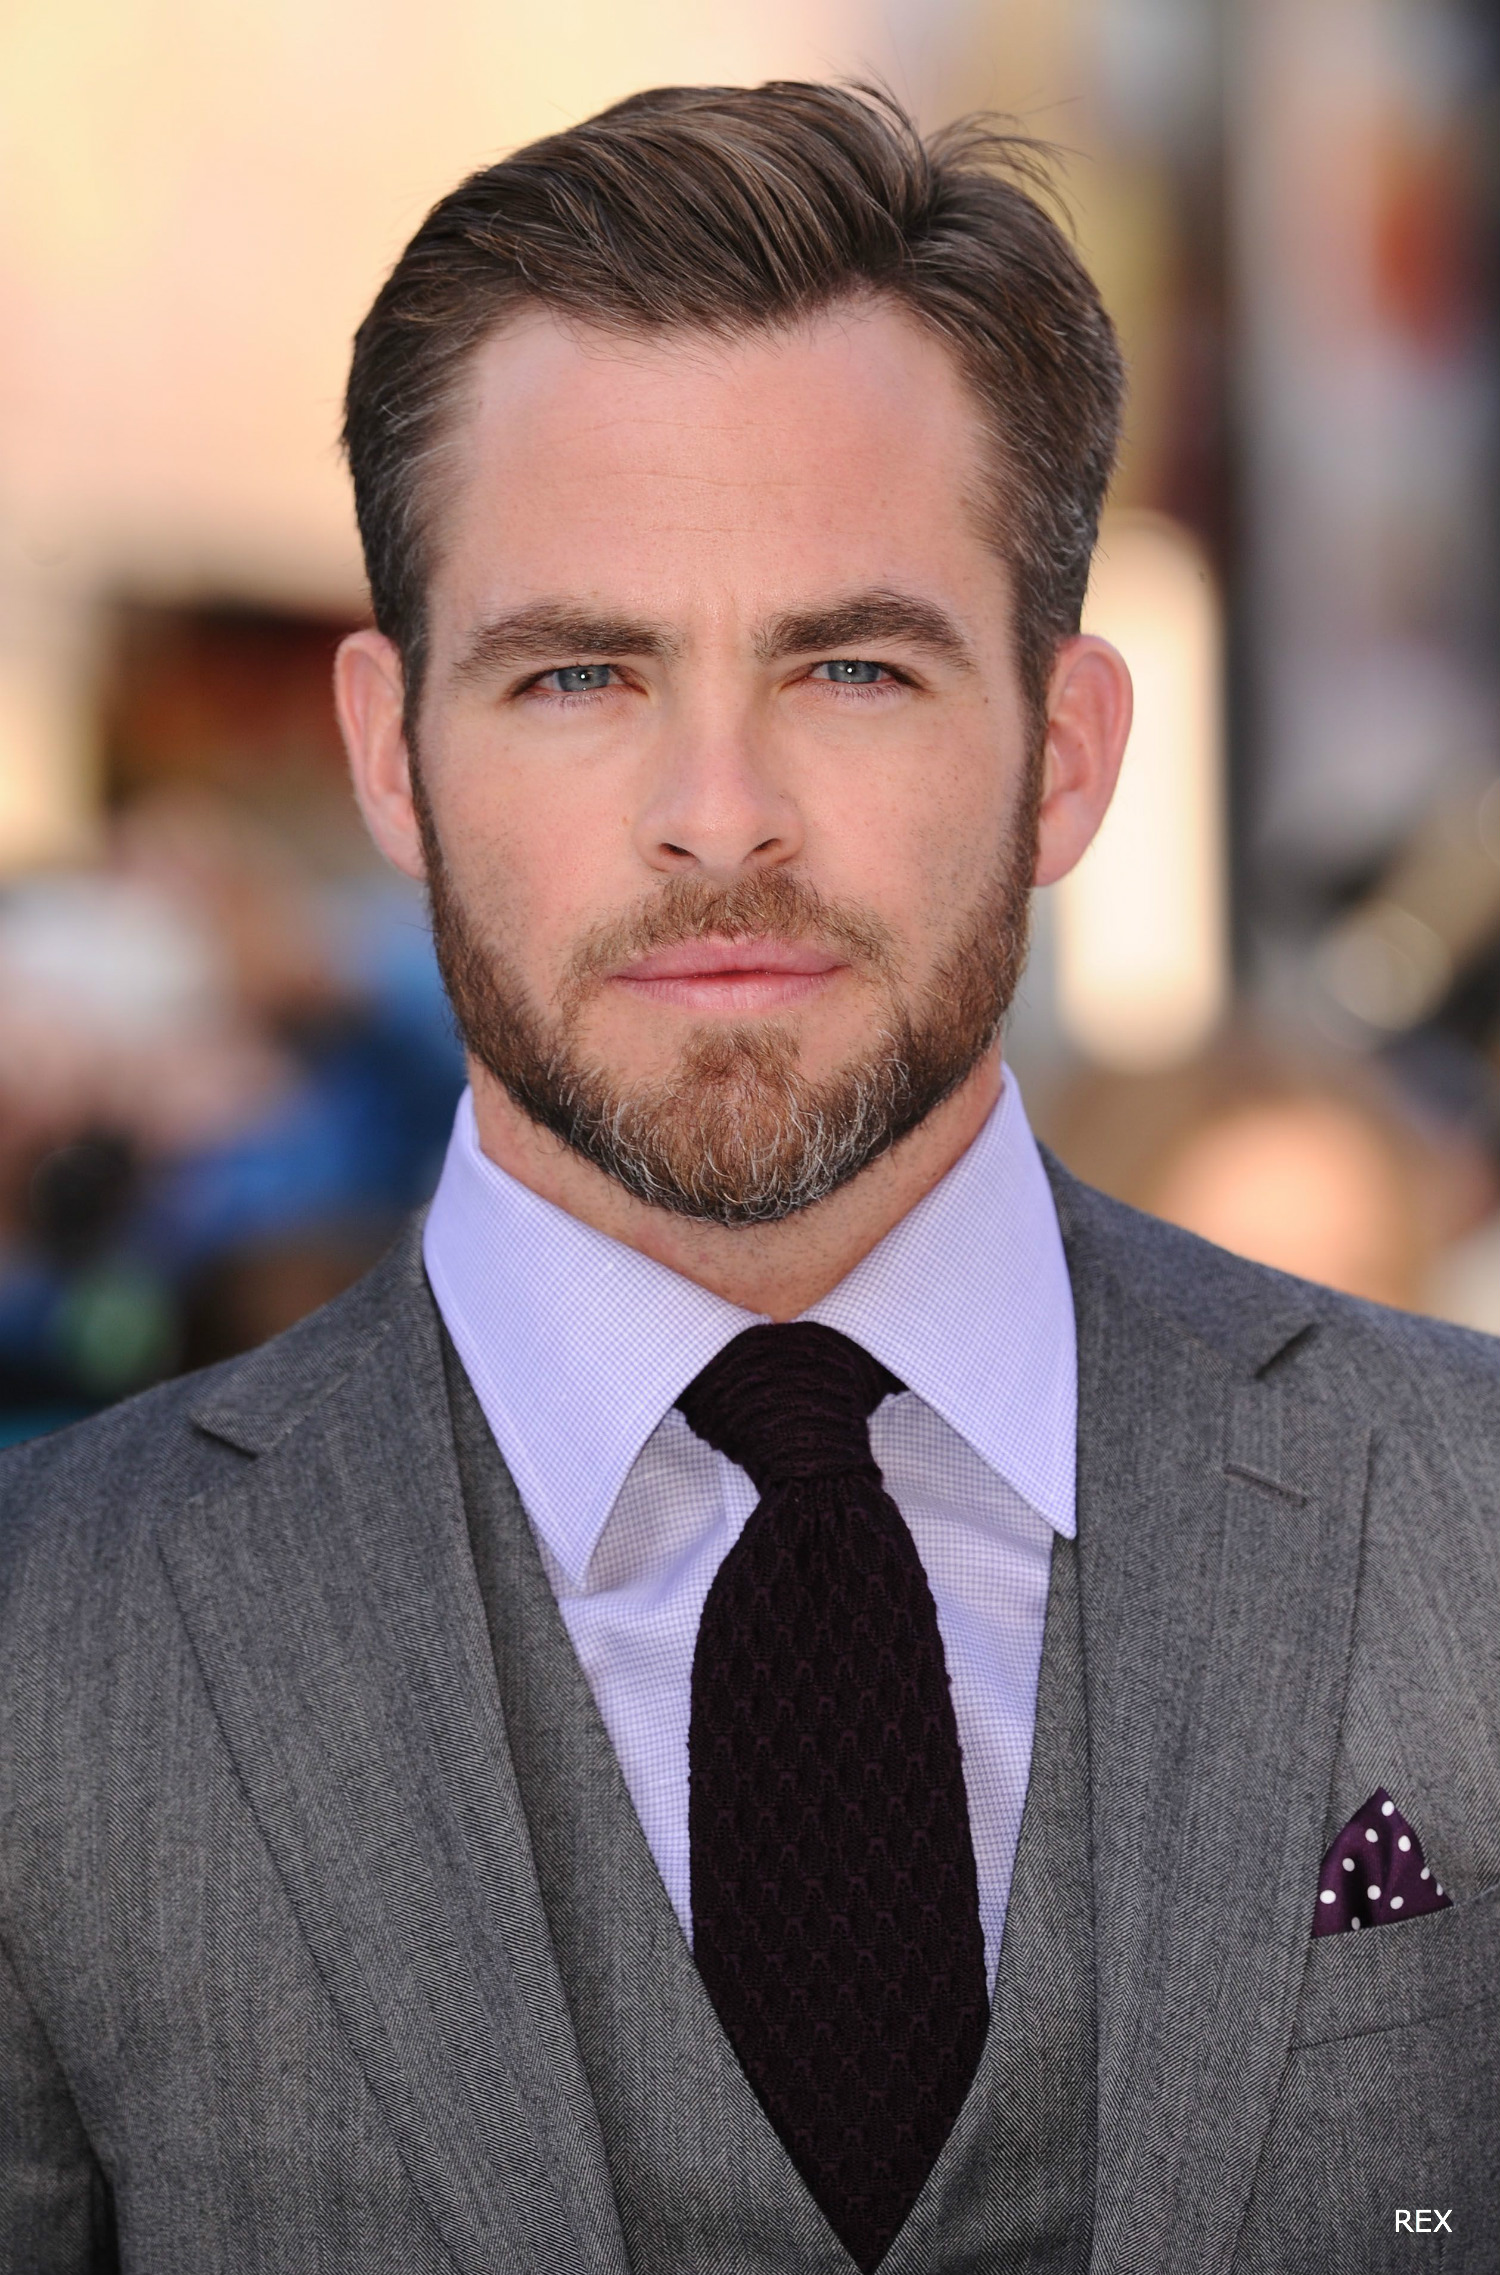 hairstyles-for-men-2016-chris-pine-hair-beard